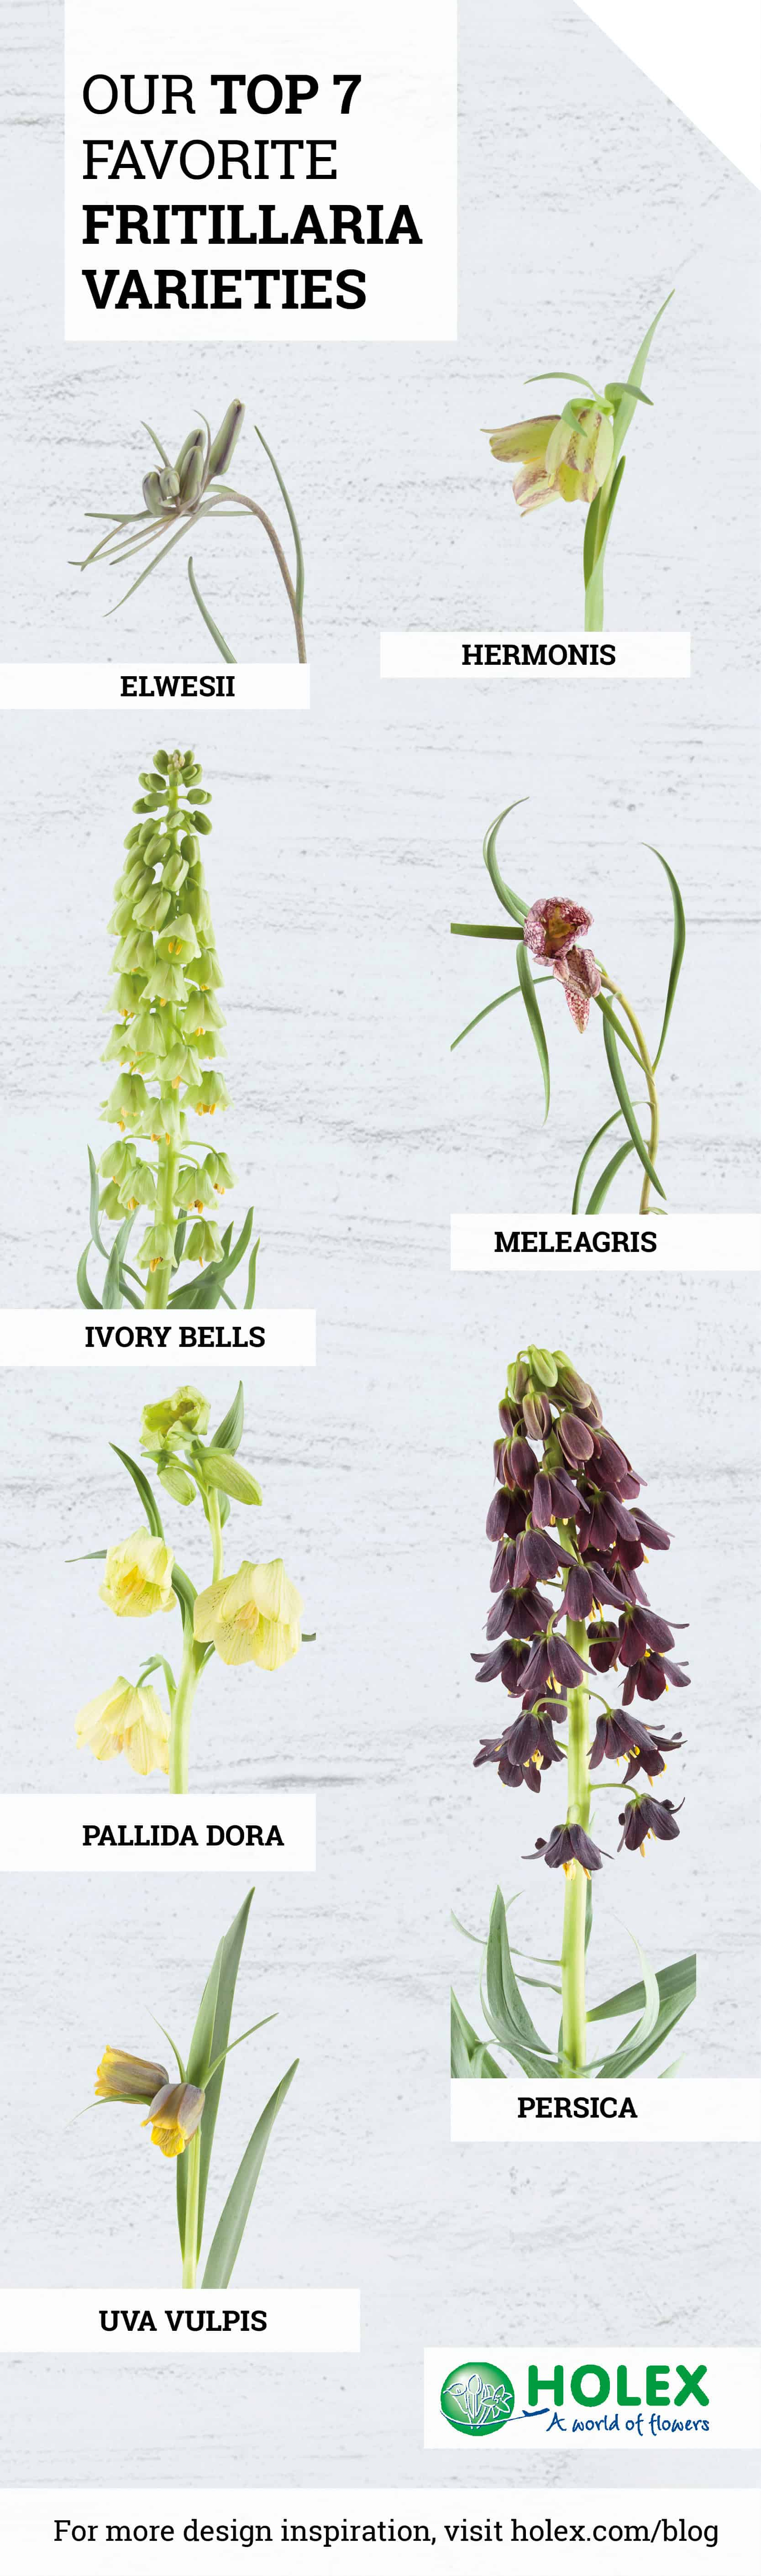 Top 7 Fritillaria varieties